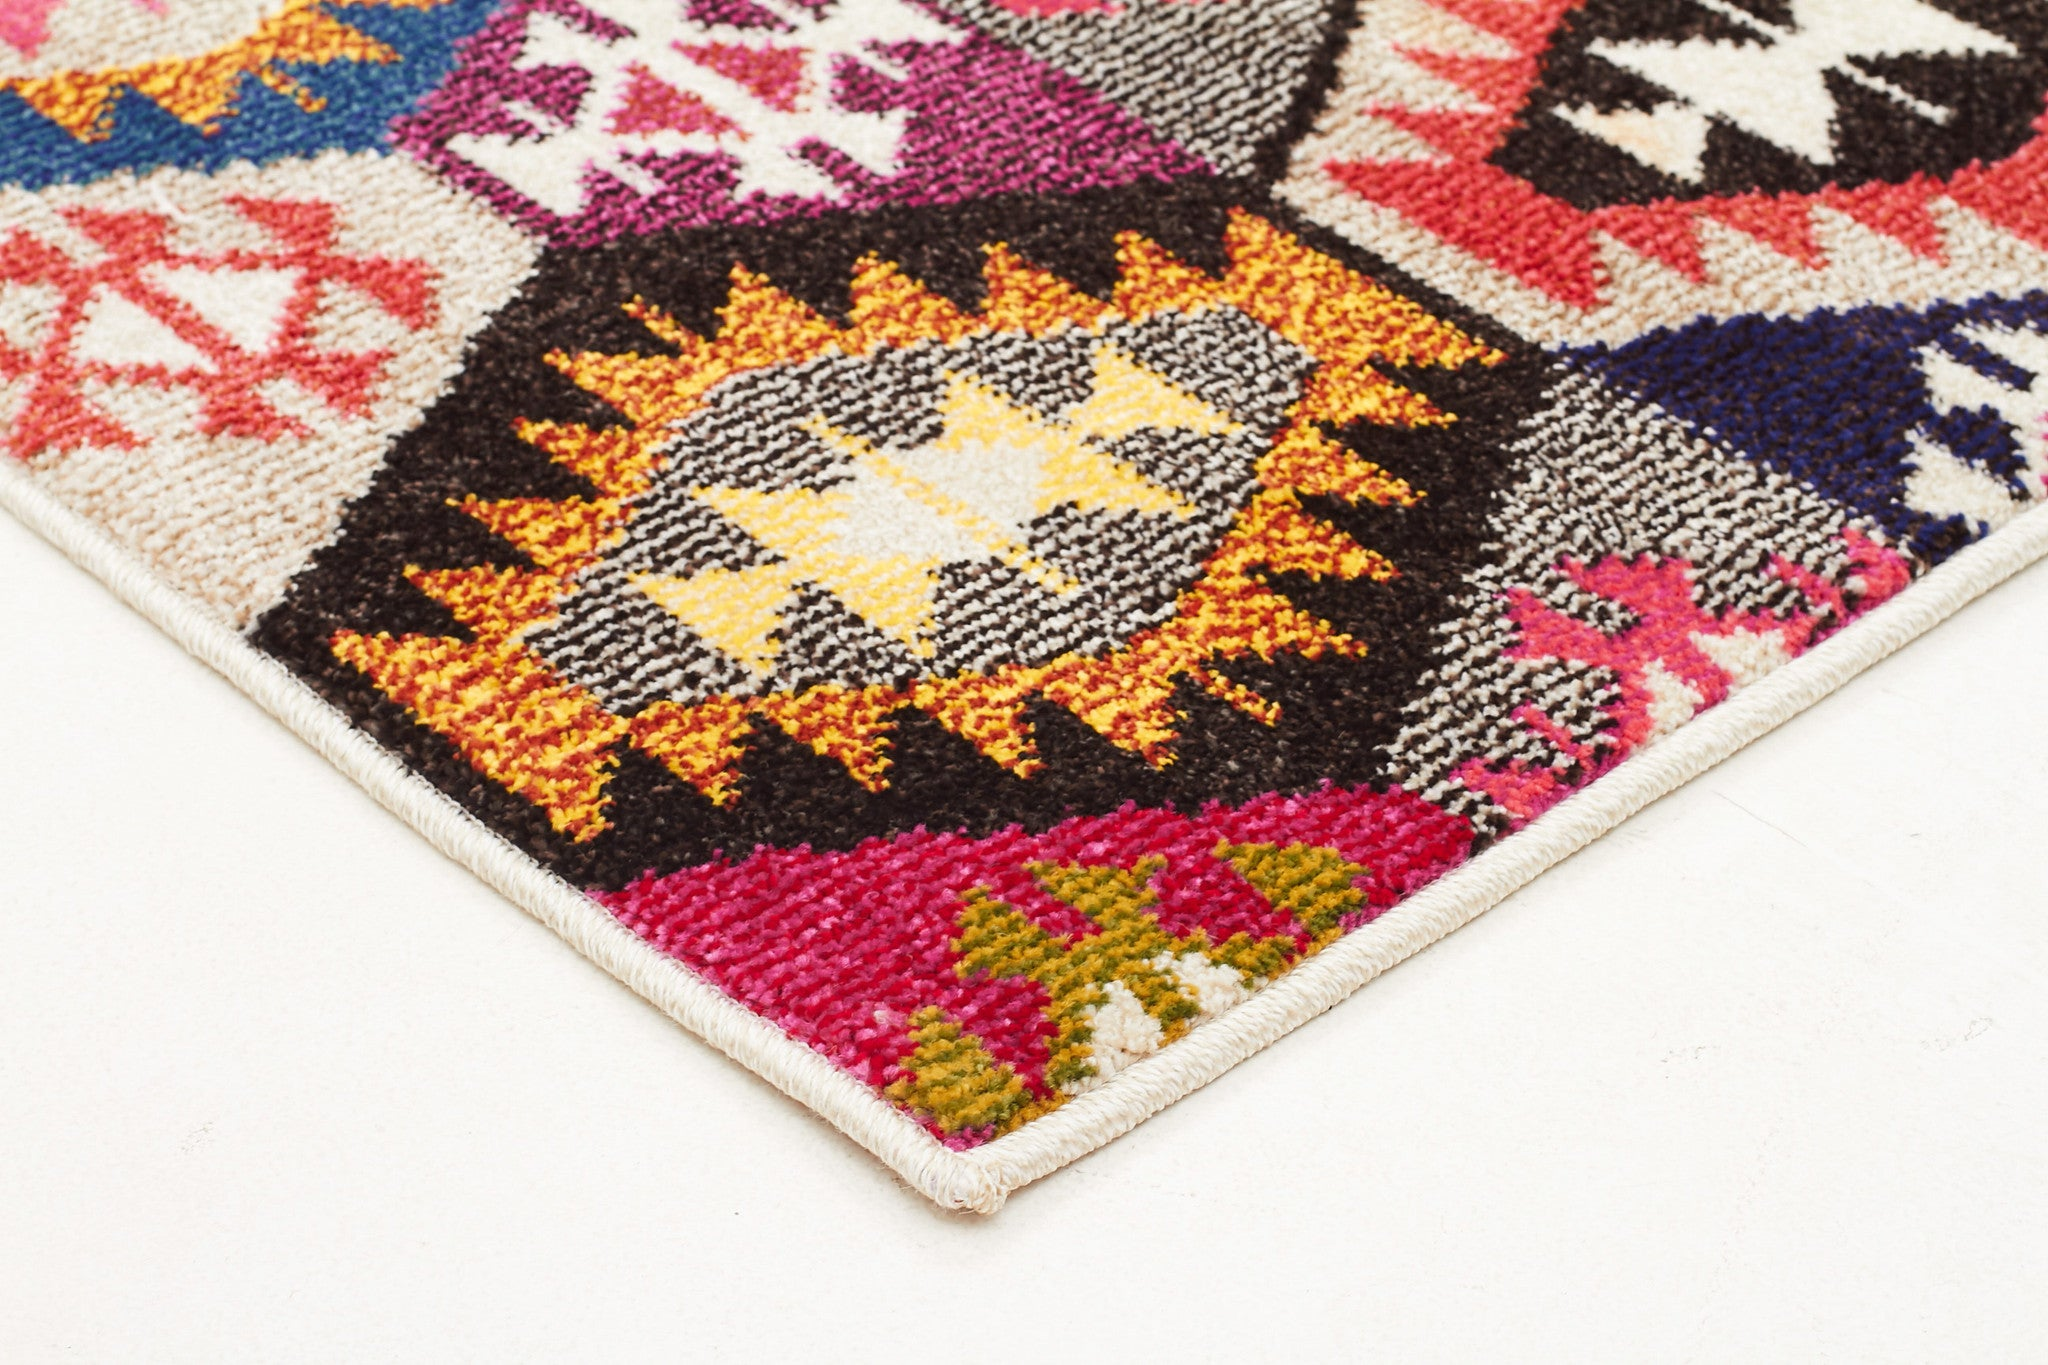 Gemini 509 Rug - Multi Coloured